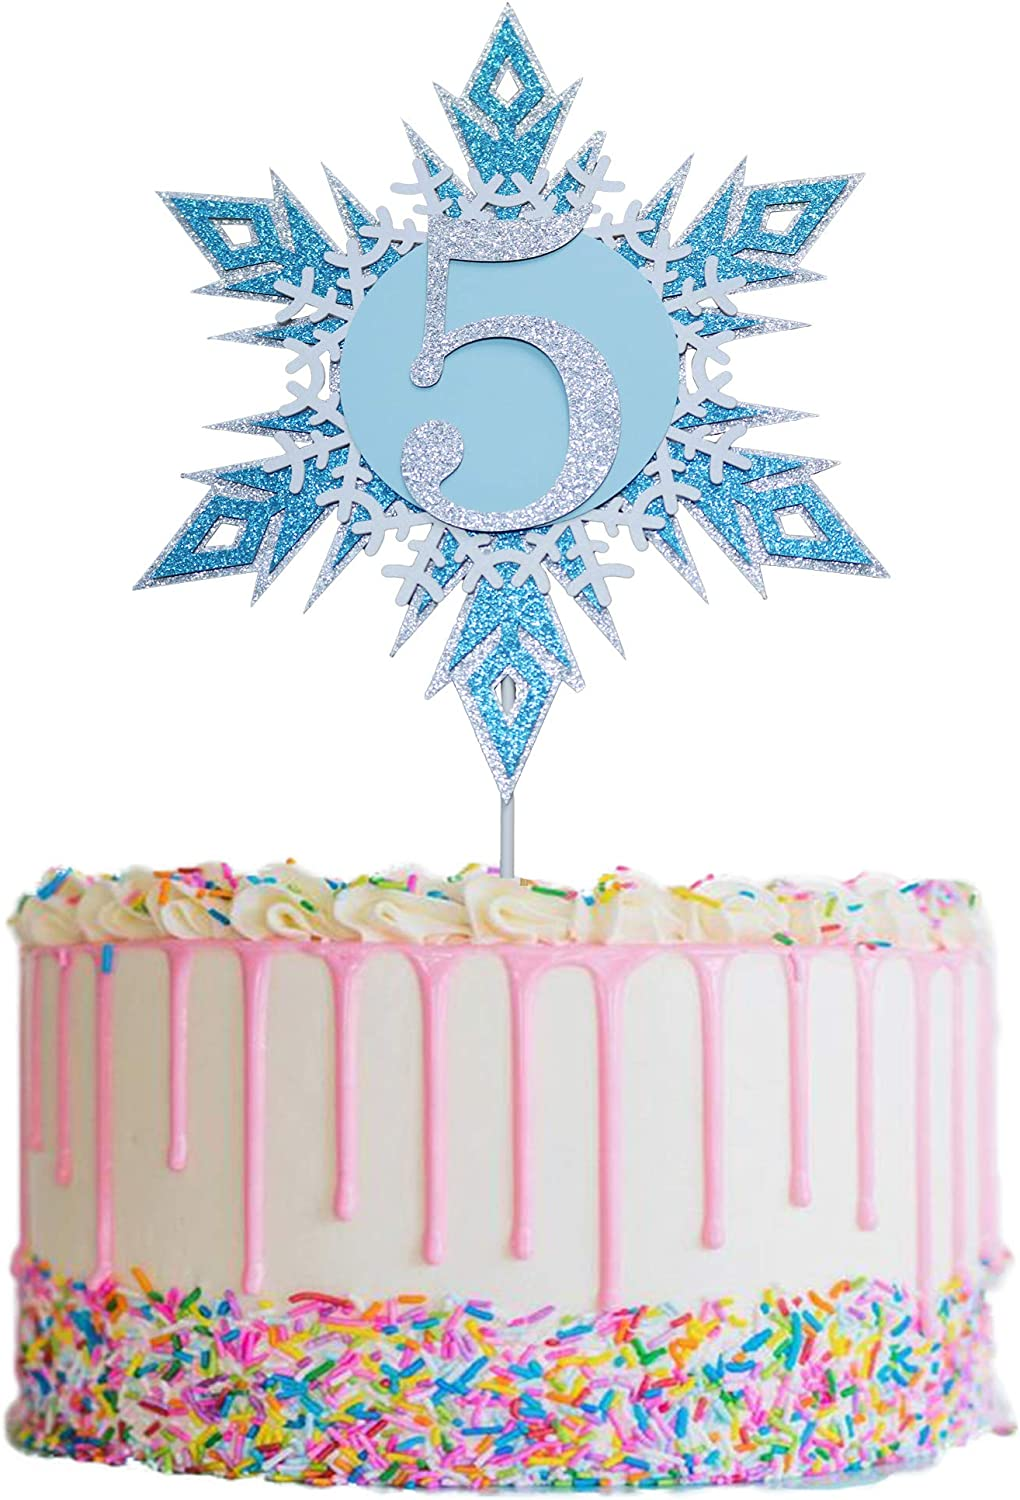 Frozen Cake Toppers 5 Happy Birthday Challenge the lowest price Snow 5th Topper In stock